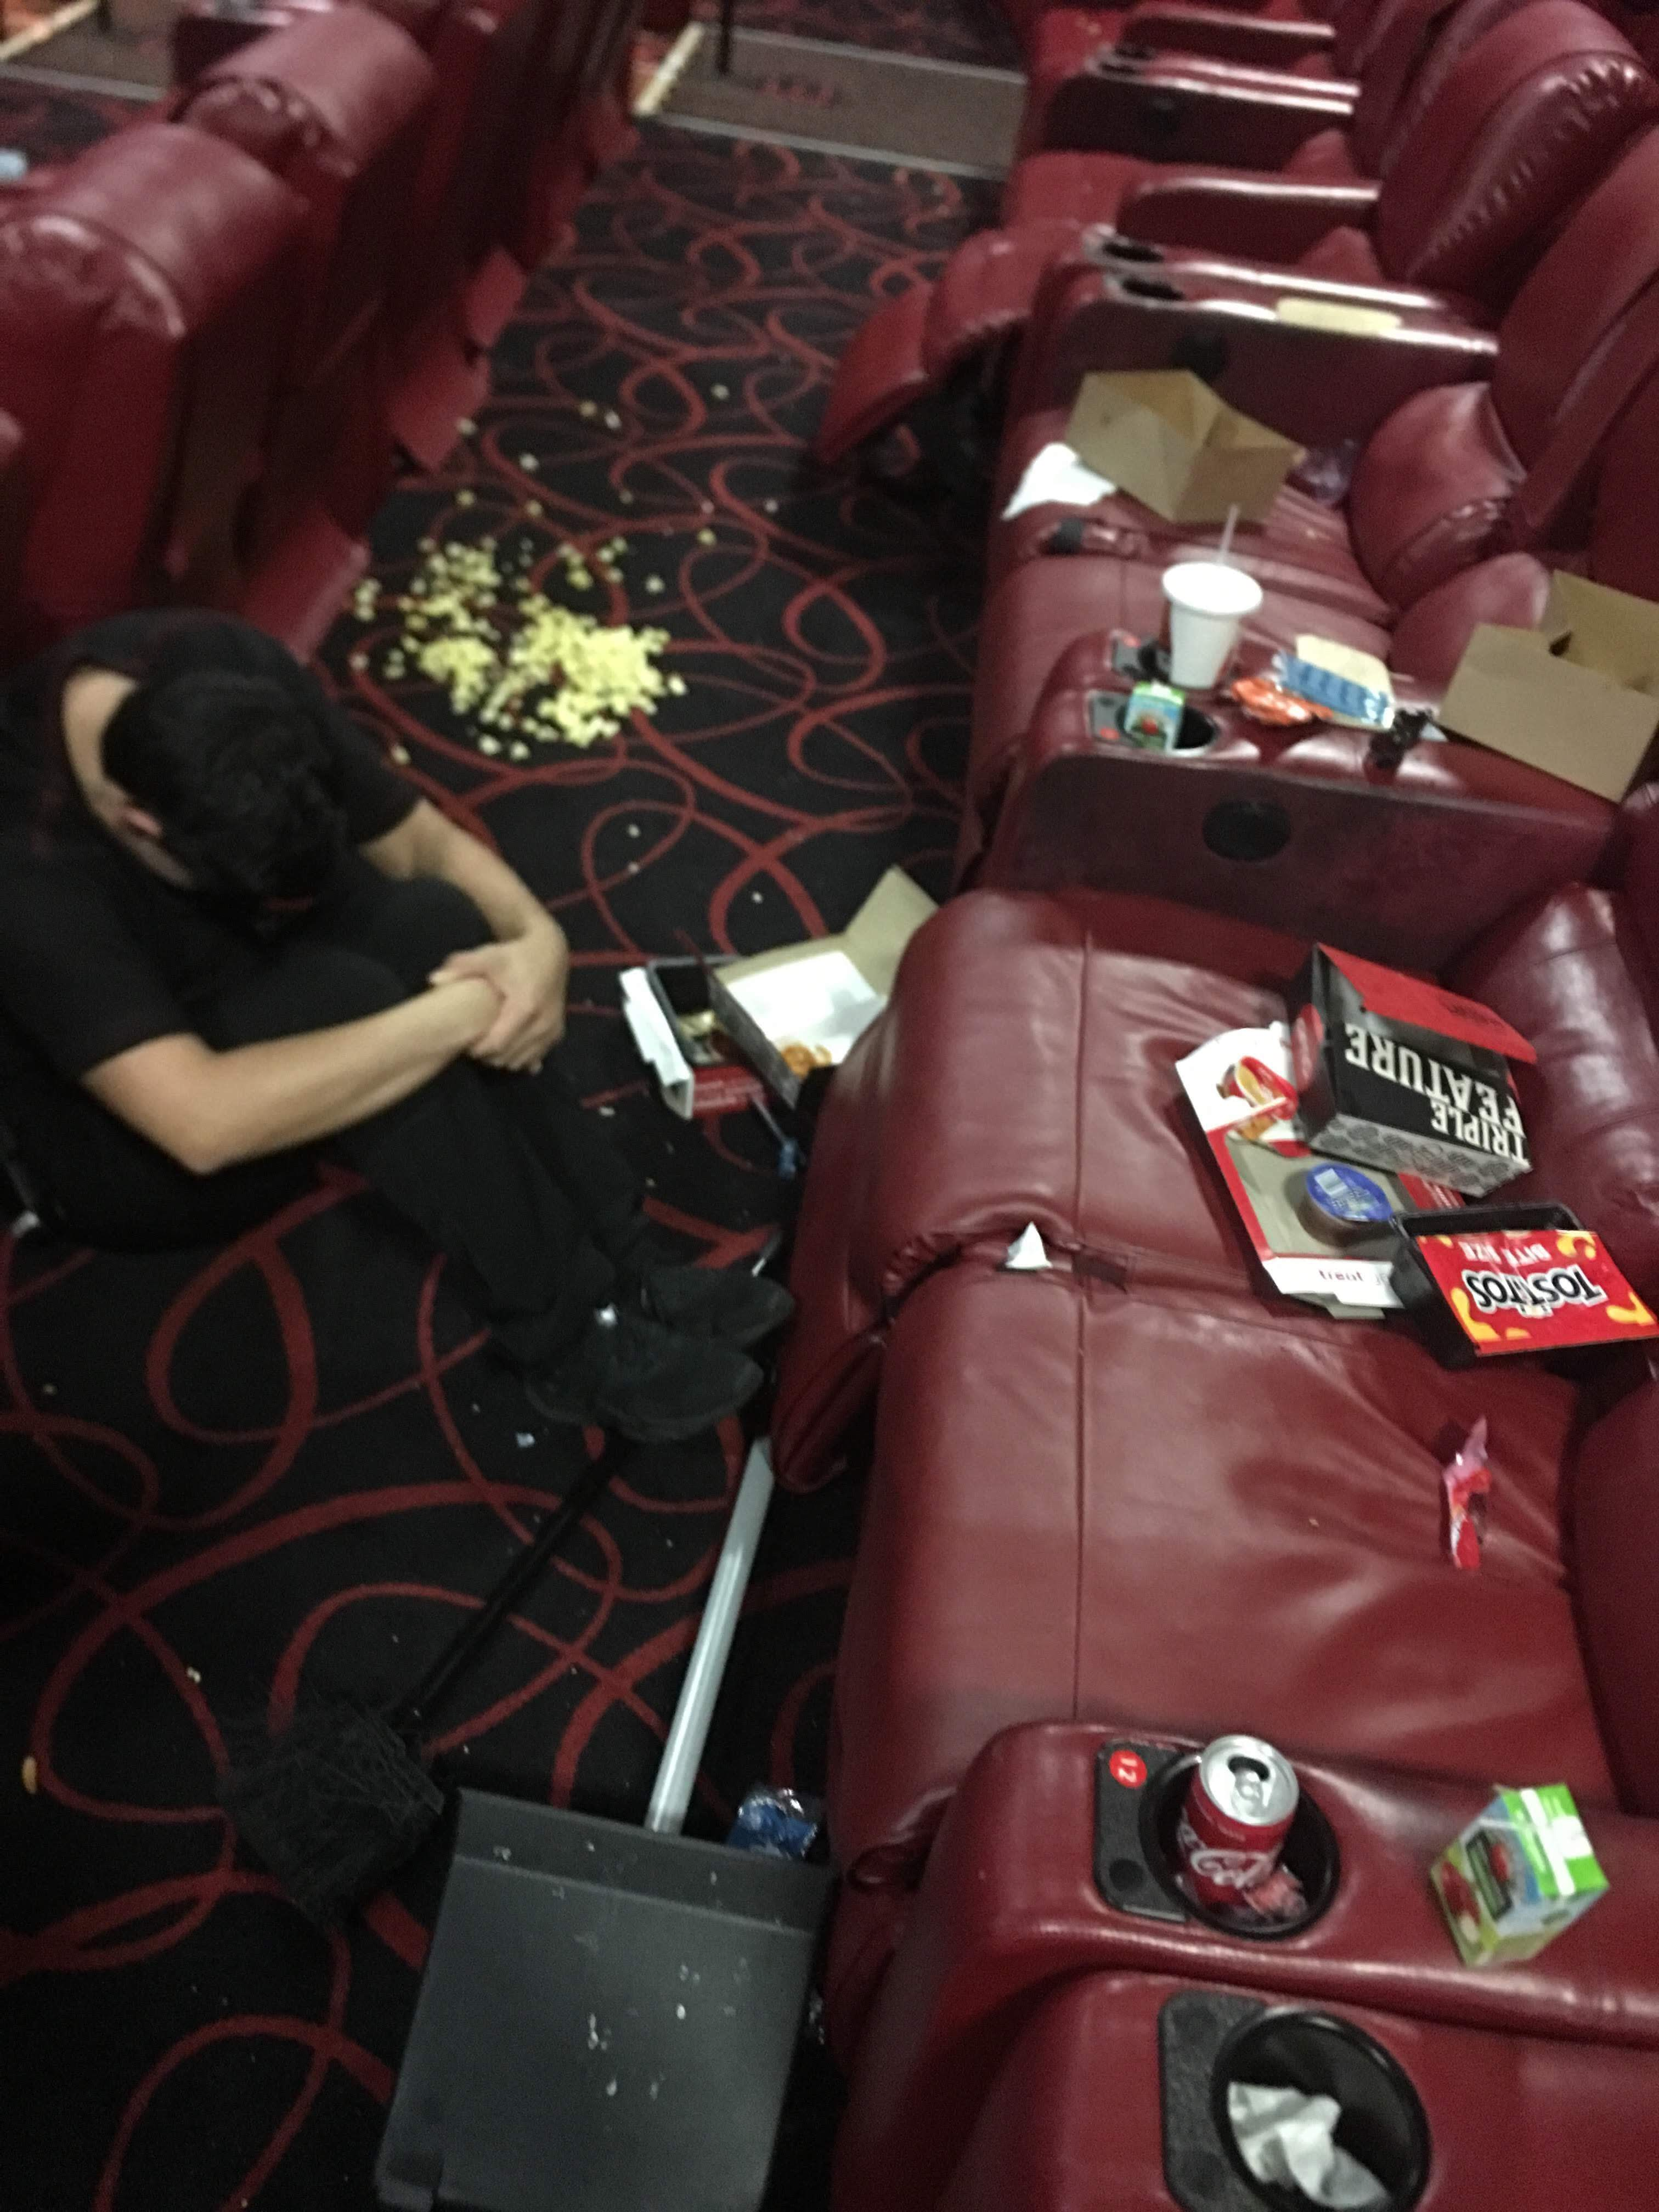 Please be nice to staff and clean up after yourself : 全米で猛烈な嵐のような大動員を集めている「アベンジャーズ : エンドゲーム」を上映中の映画館のスタッフの方の苦悩 😔